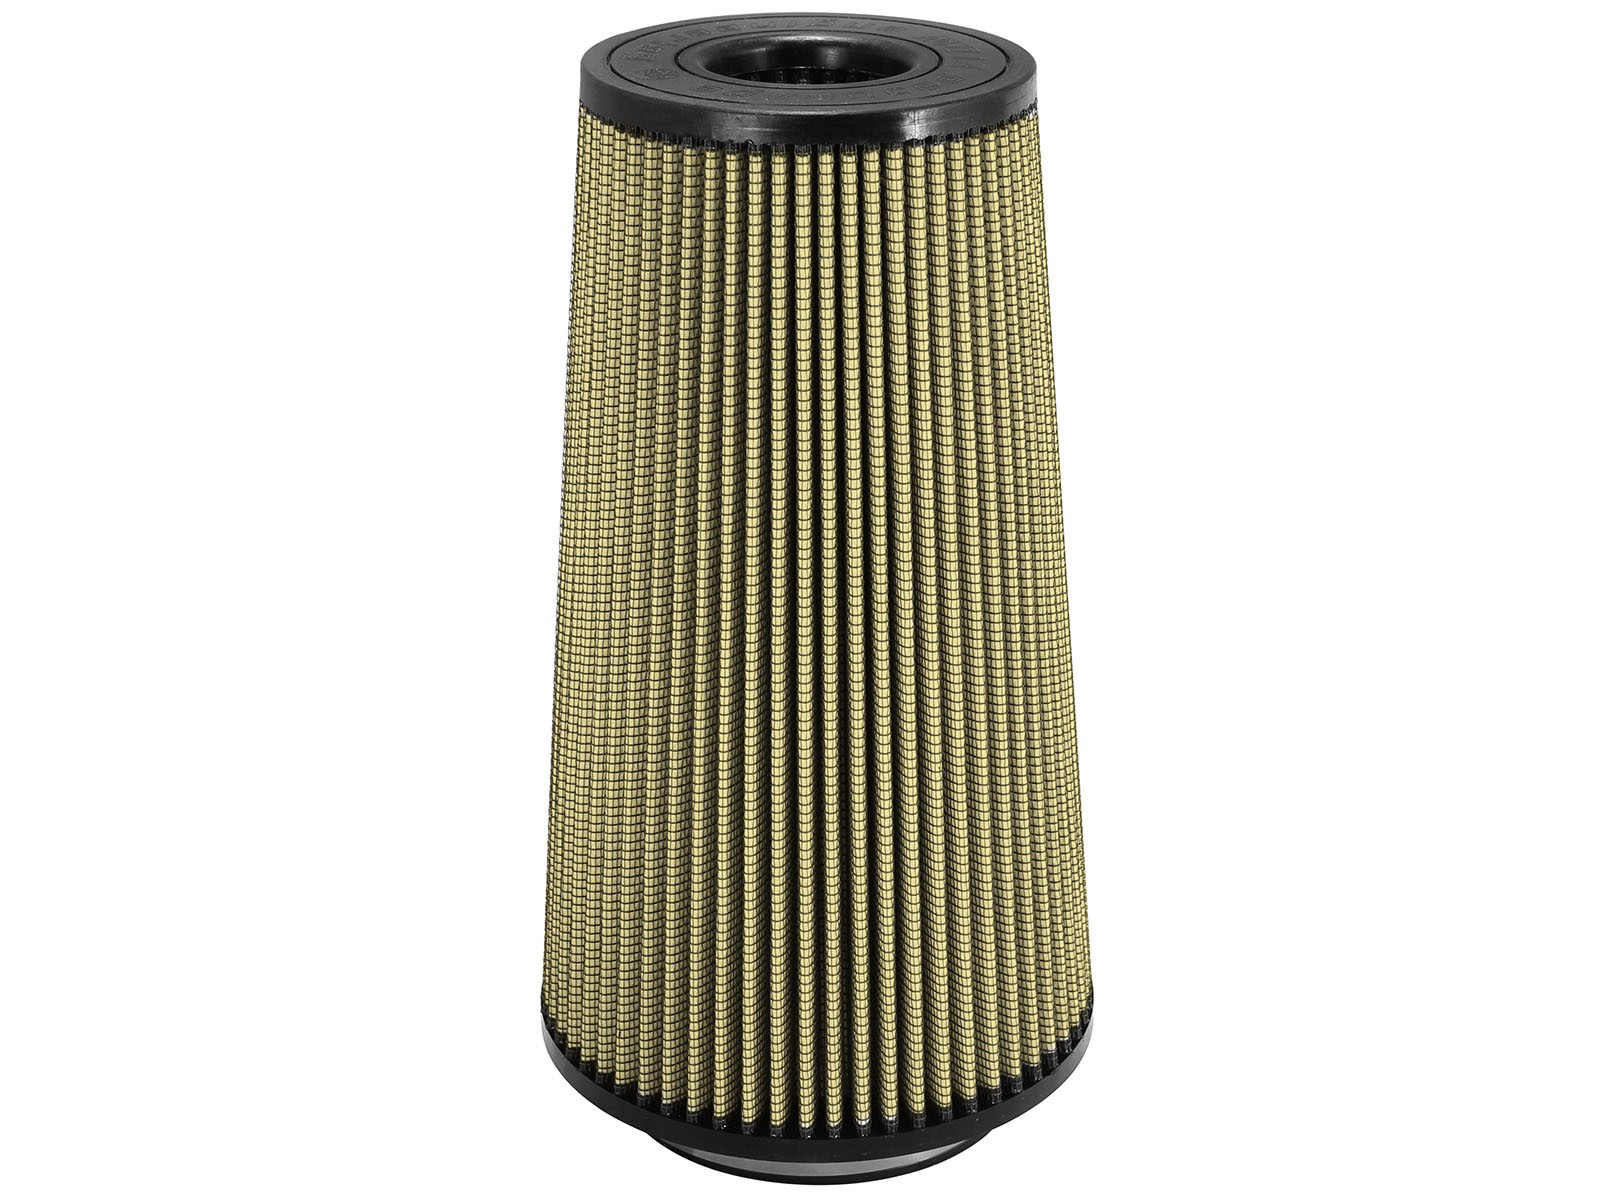 aFe POWER 72-91096 Magnum FLOW Pro GUARD7 Air Filter